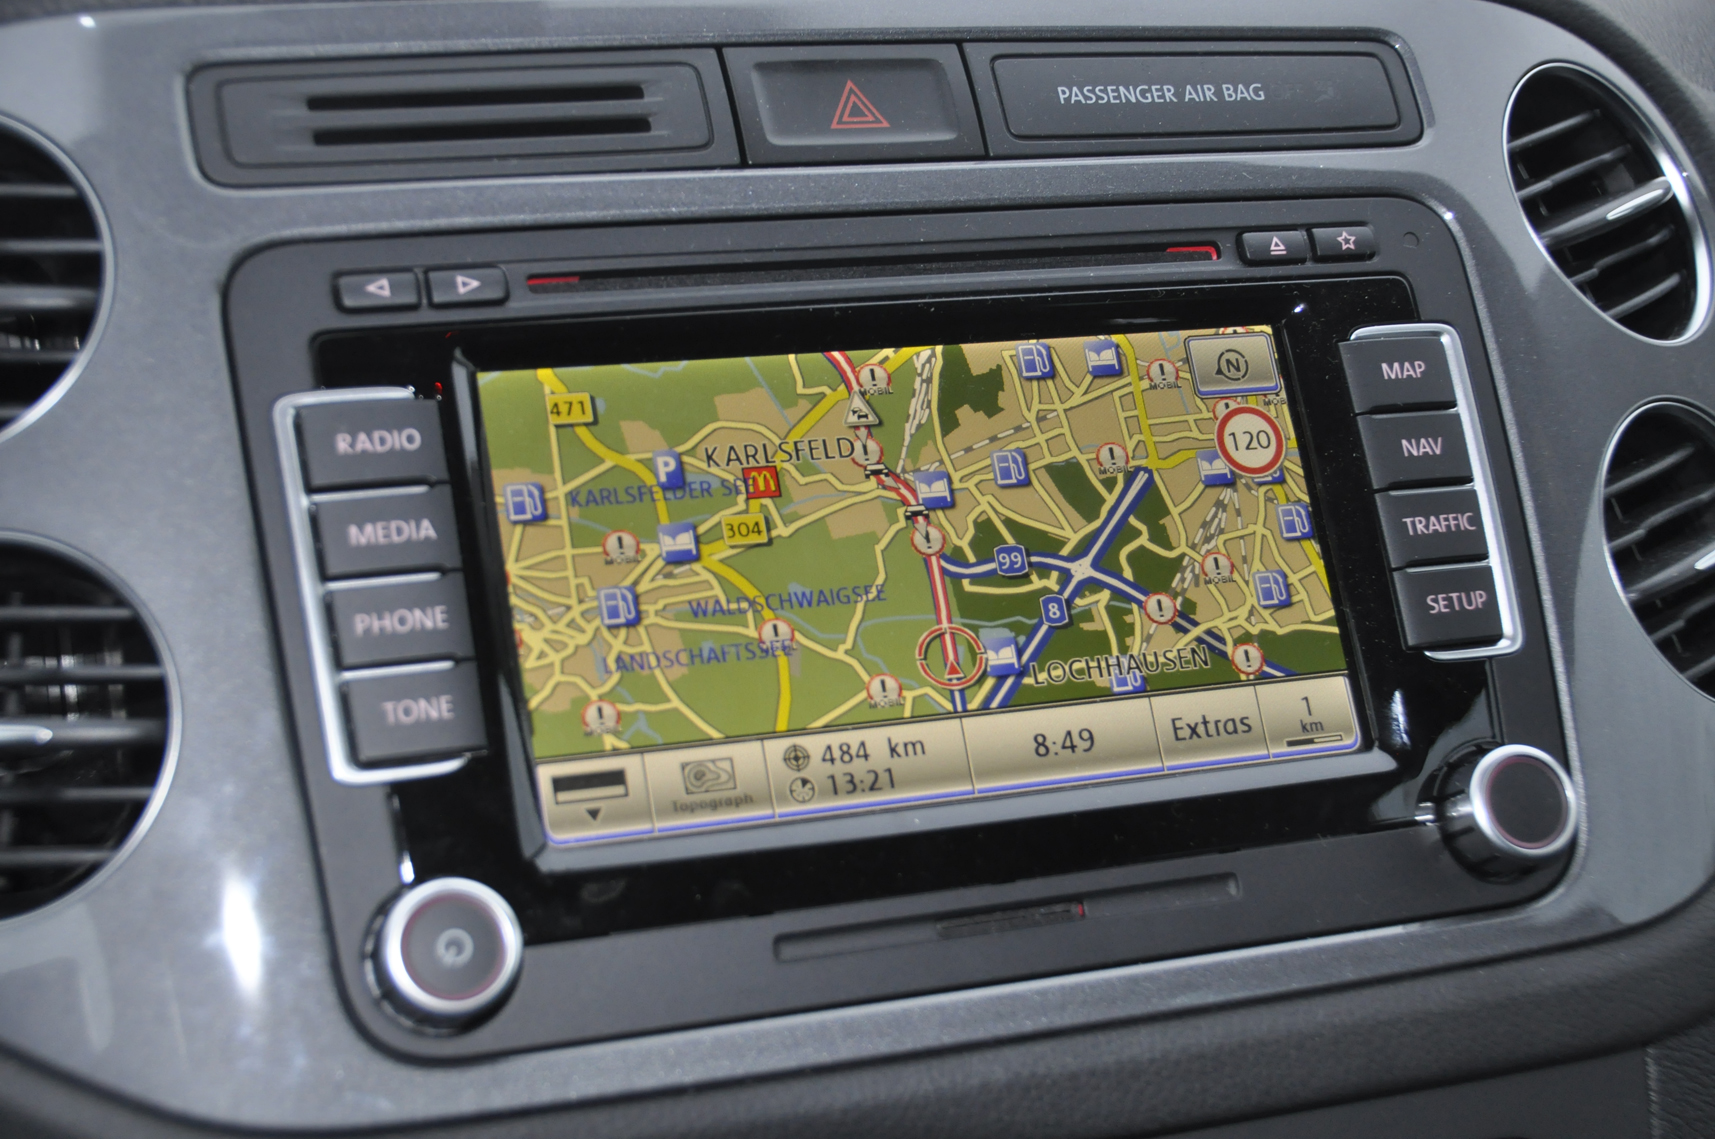 vw rns 510 navigation gps. Black Bedroom Furniture Sets. Home Design Ideas